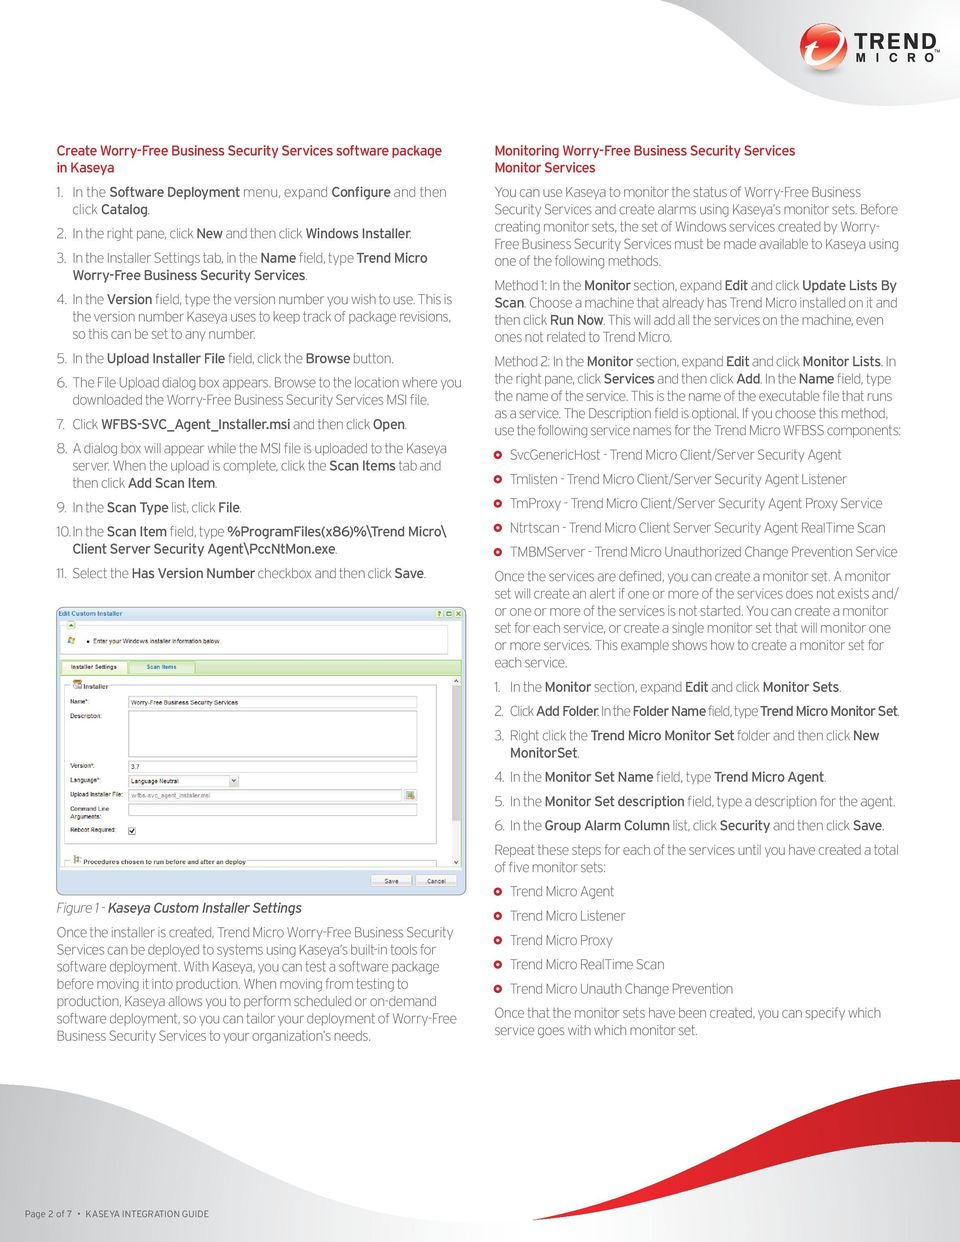 Trend Micro KASEYA INTEGRATION GUIDE - PDF